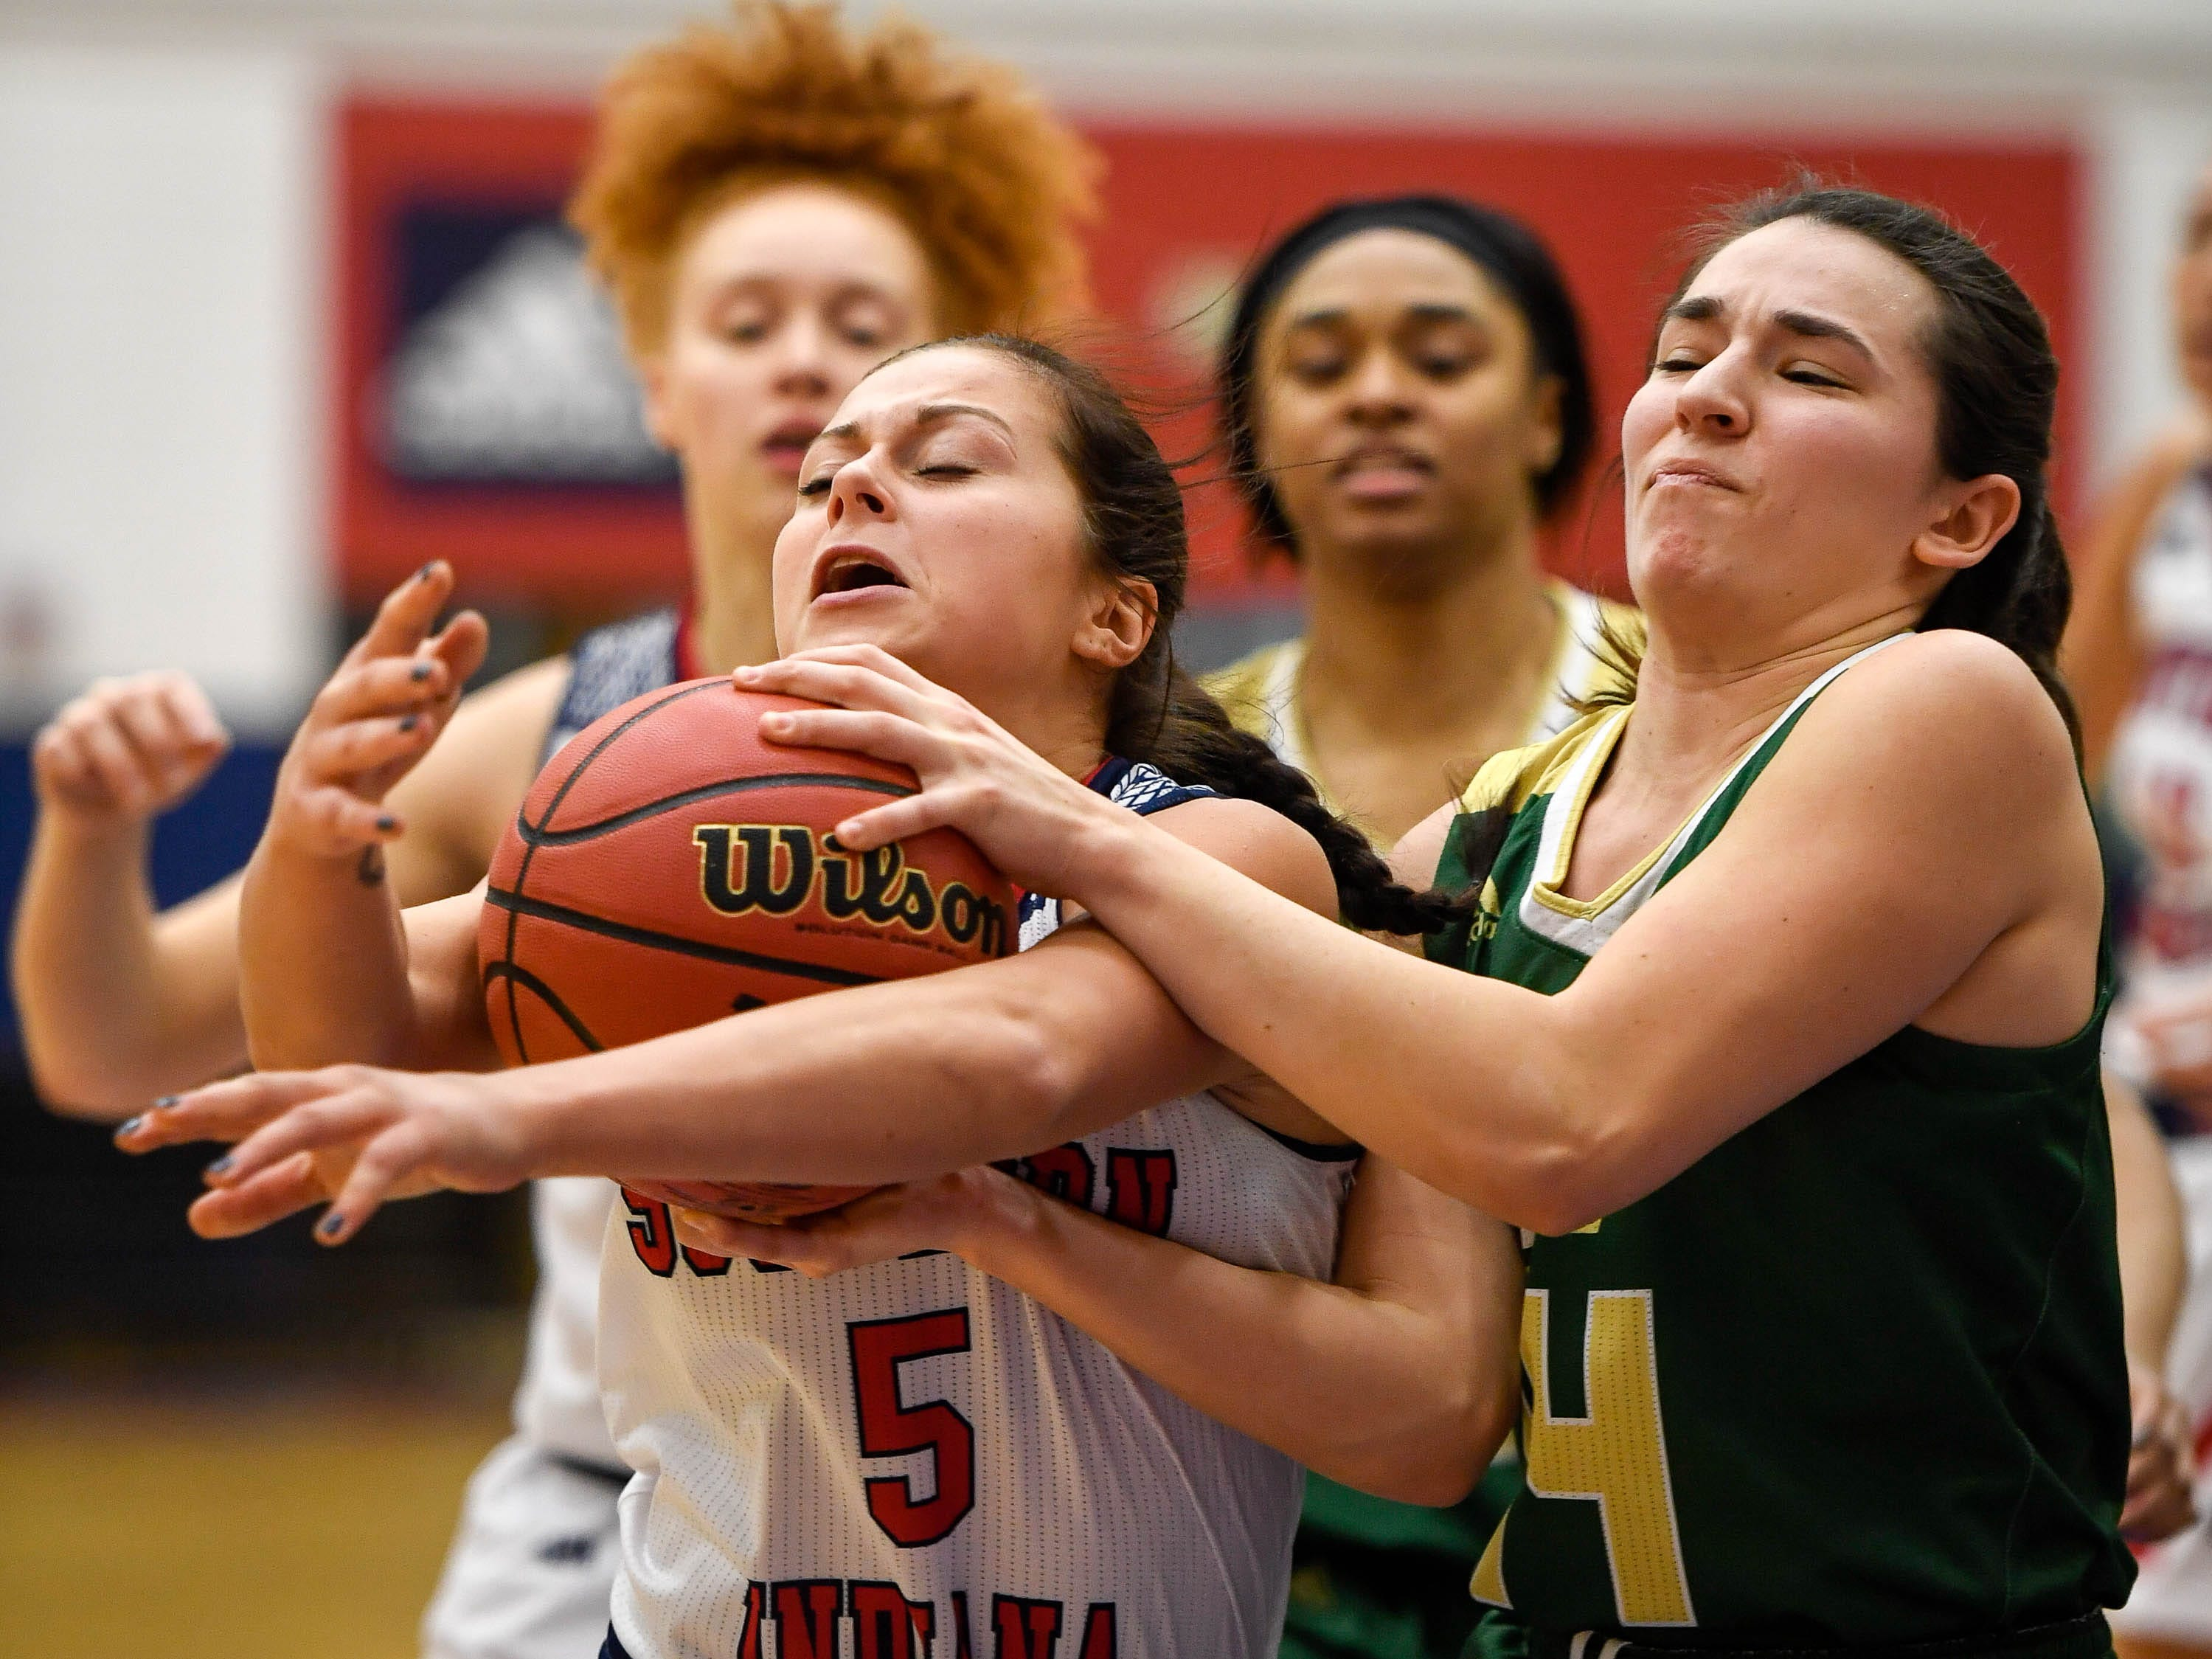 Missouri S & T's Jordan Kabetske (14) gets a held ball on University of Southern Indiana's Milana Matias (5) as she drives the ball as the University of Southern Indiana Women Screaming Eagles play the Missouri Science & Technology Miners at the PAC Arena Thursday, January 24, 2019.